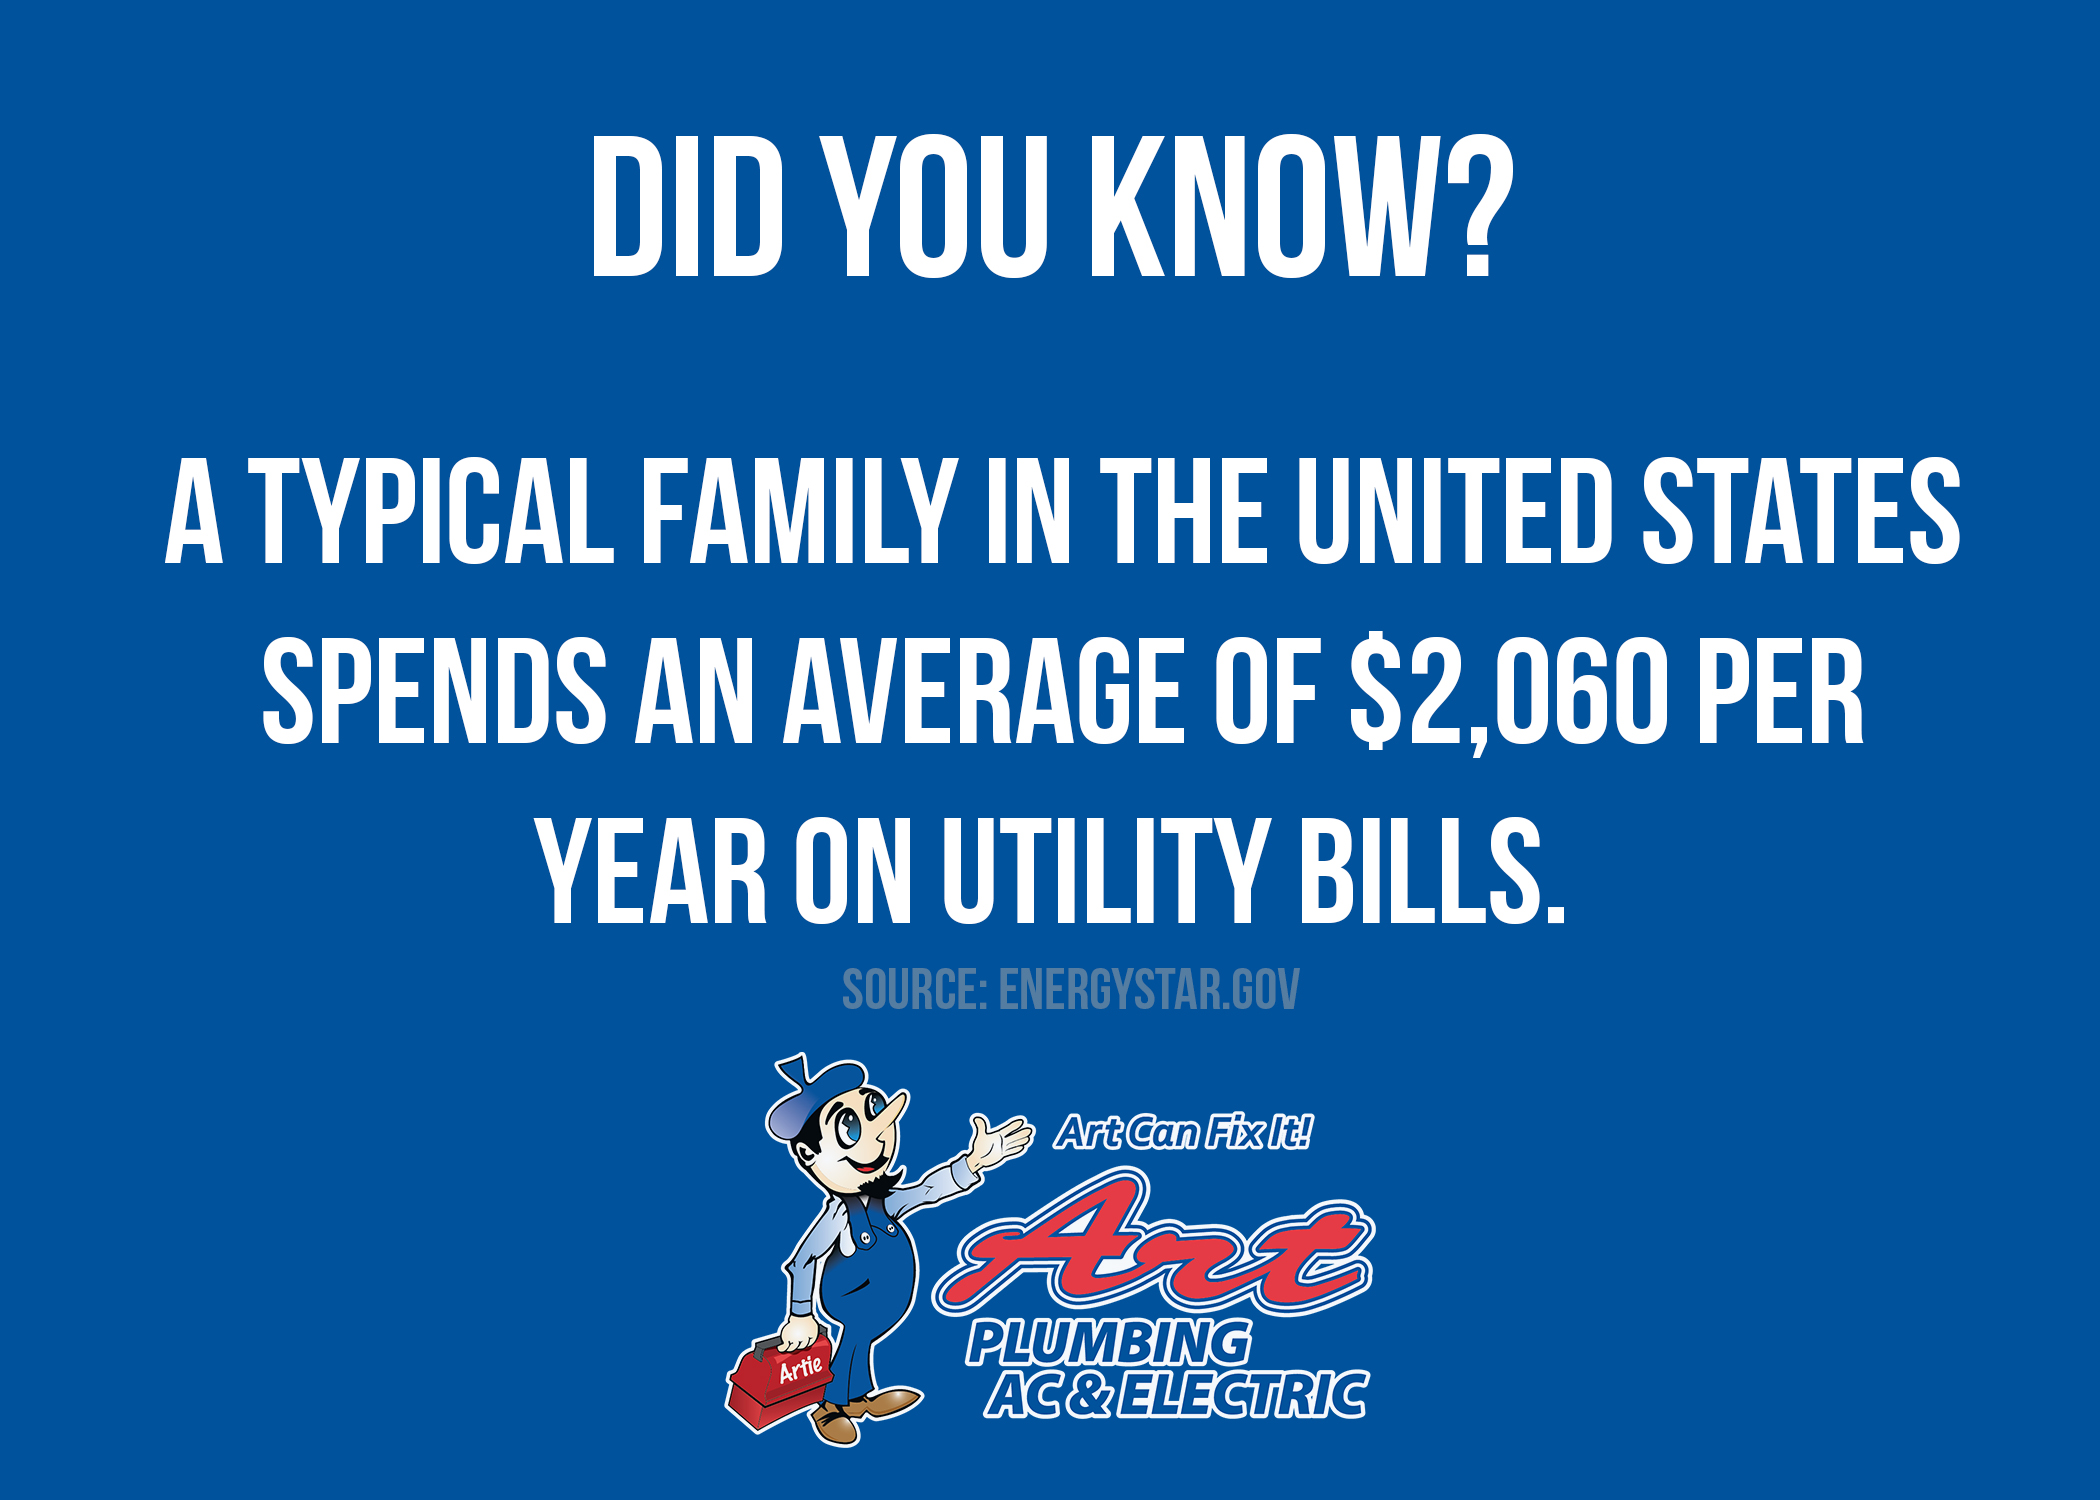 Did You Know A Typical Family Spends $2,060 On Utilities